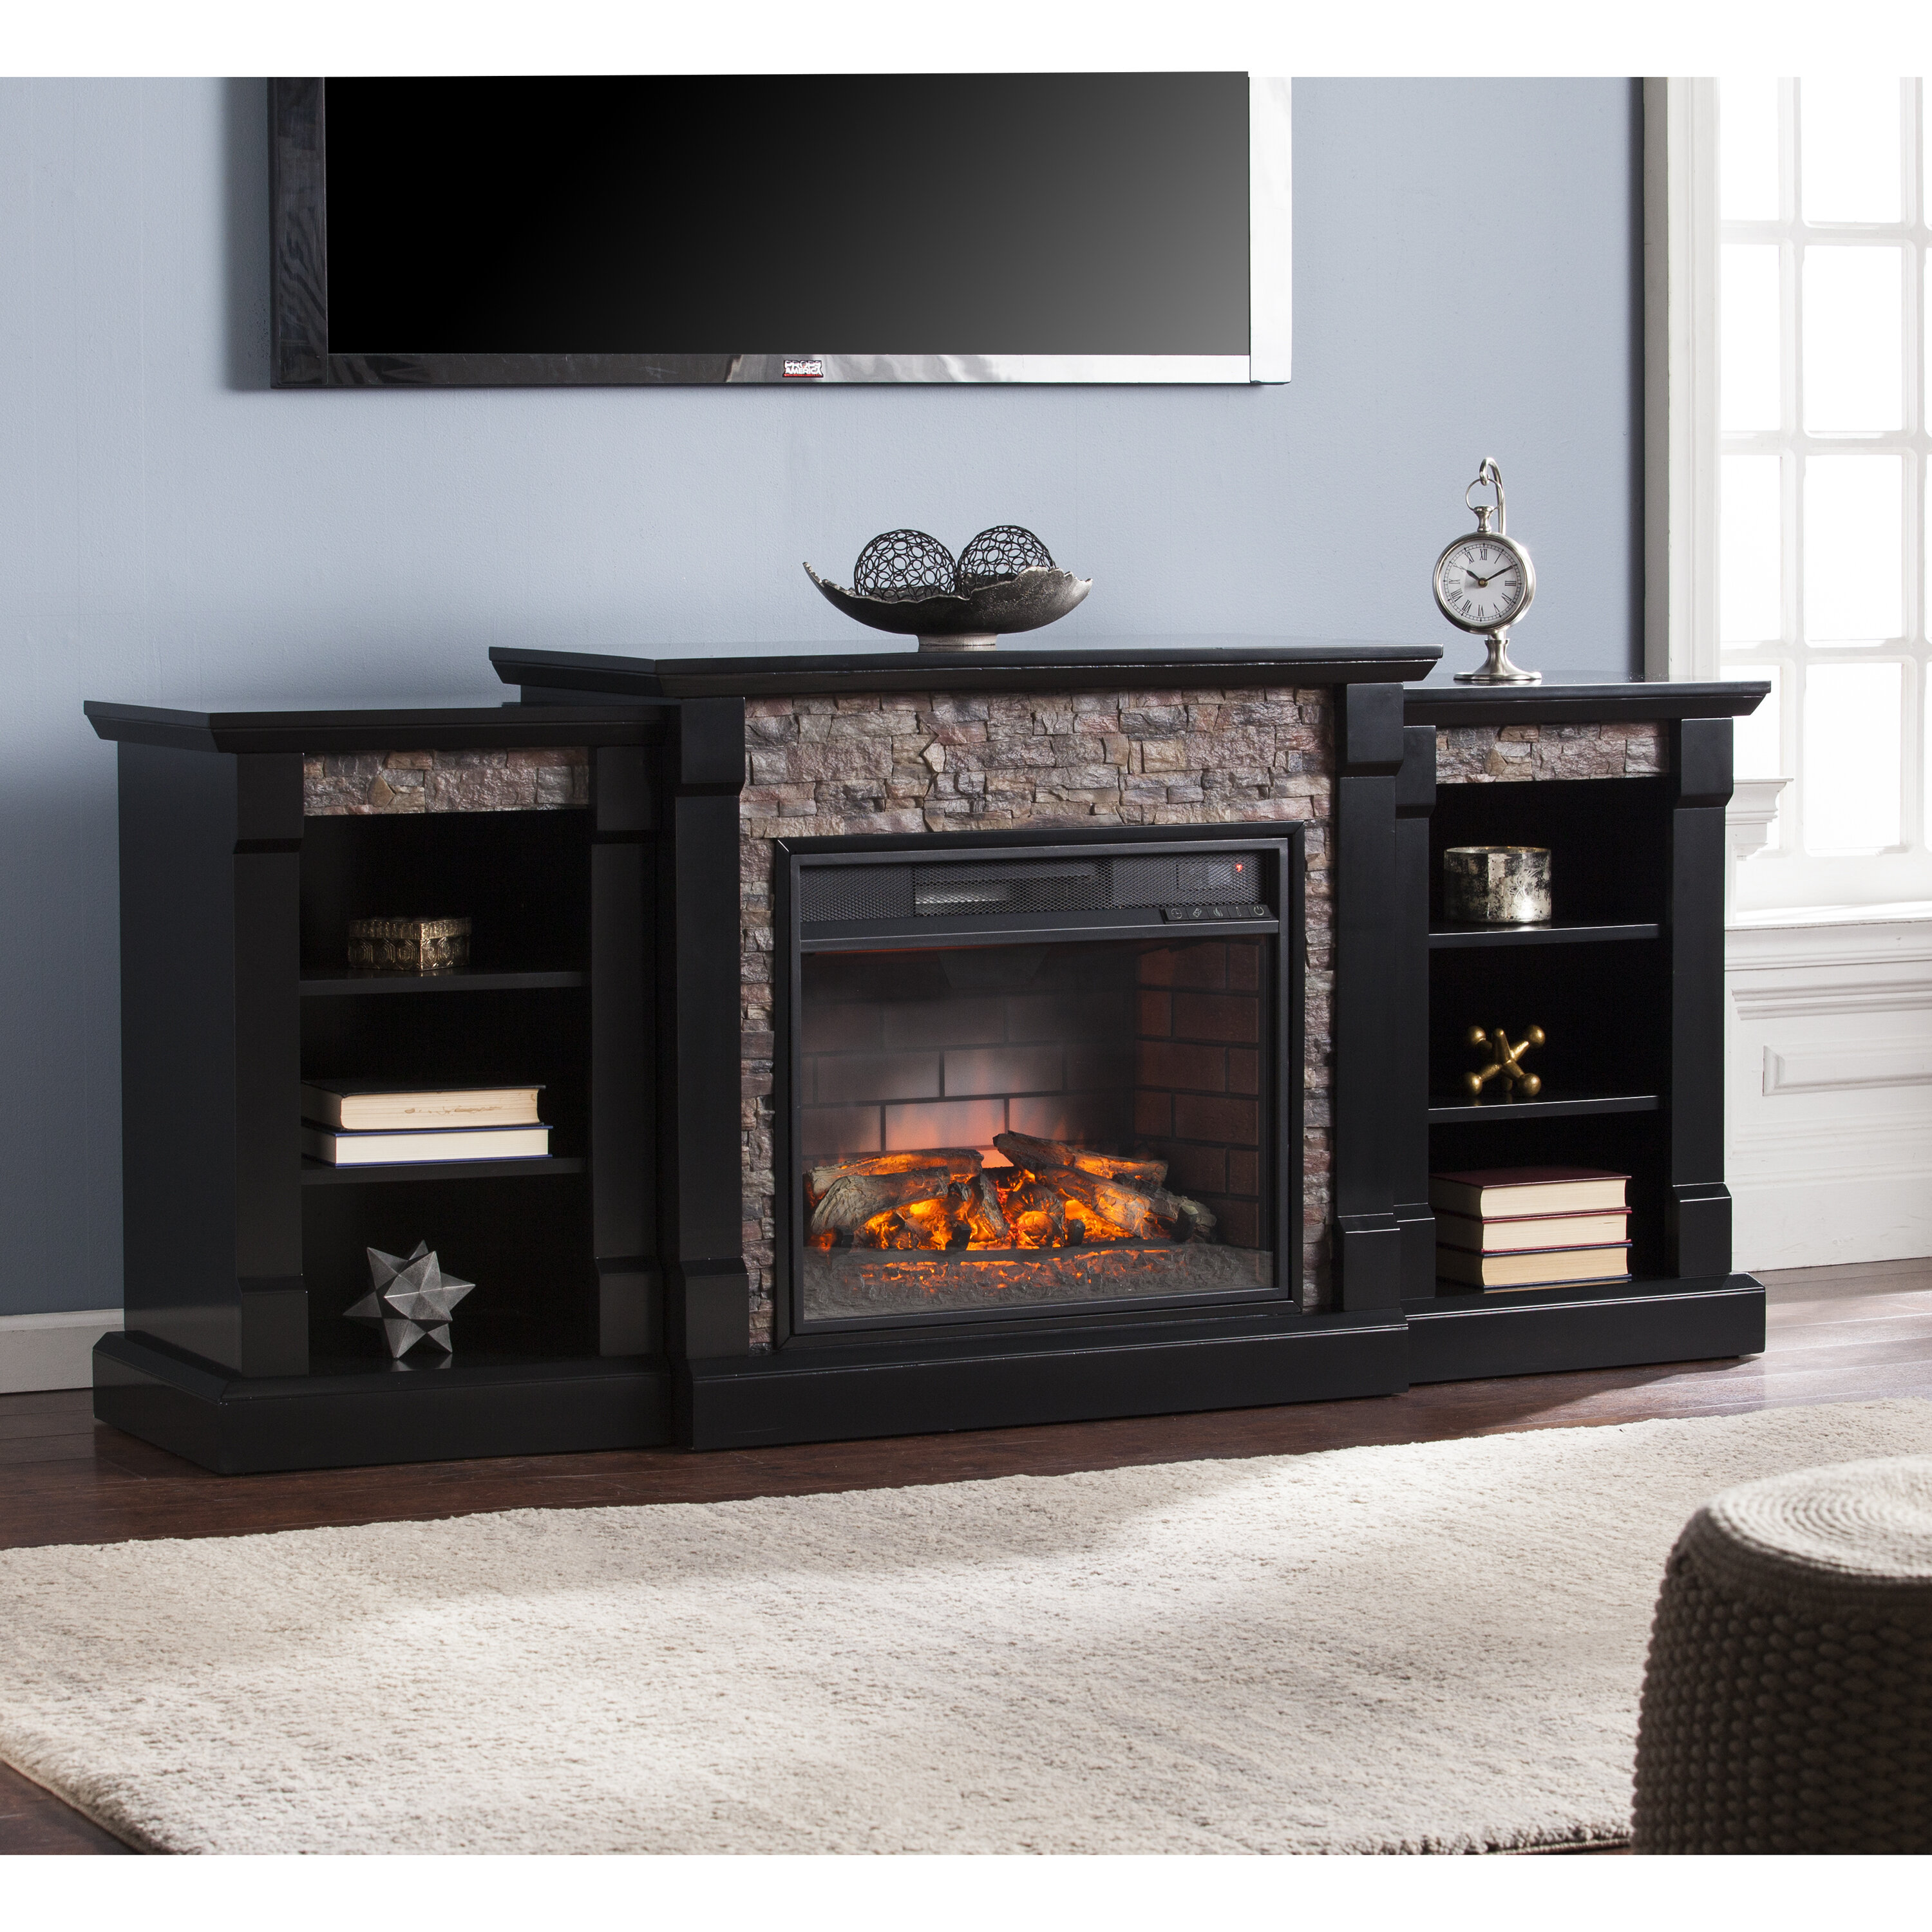 energy fireplace ideas design heater electric efficient home